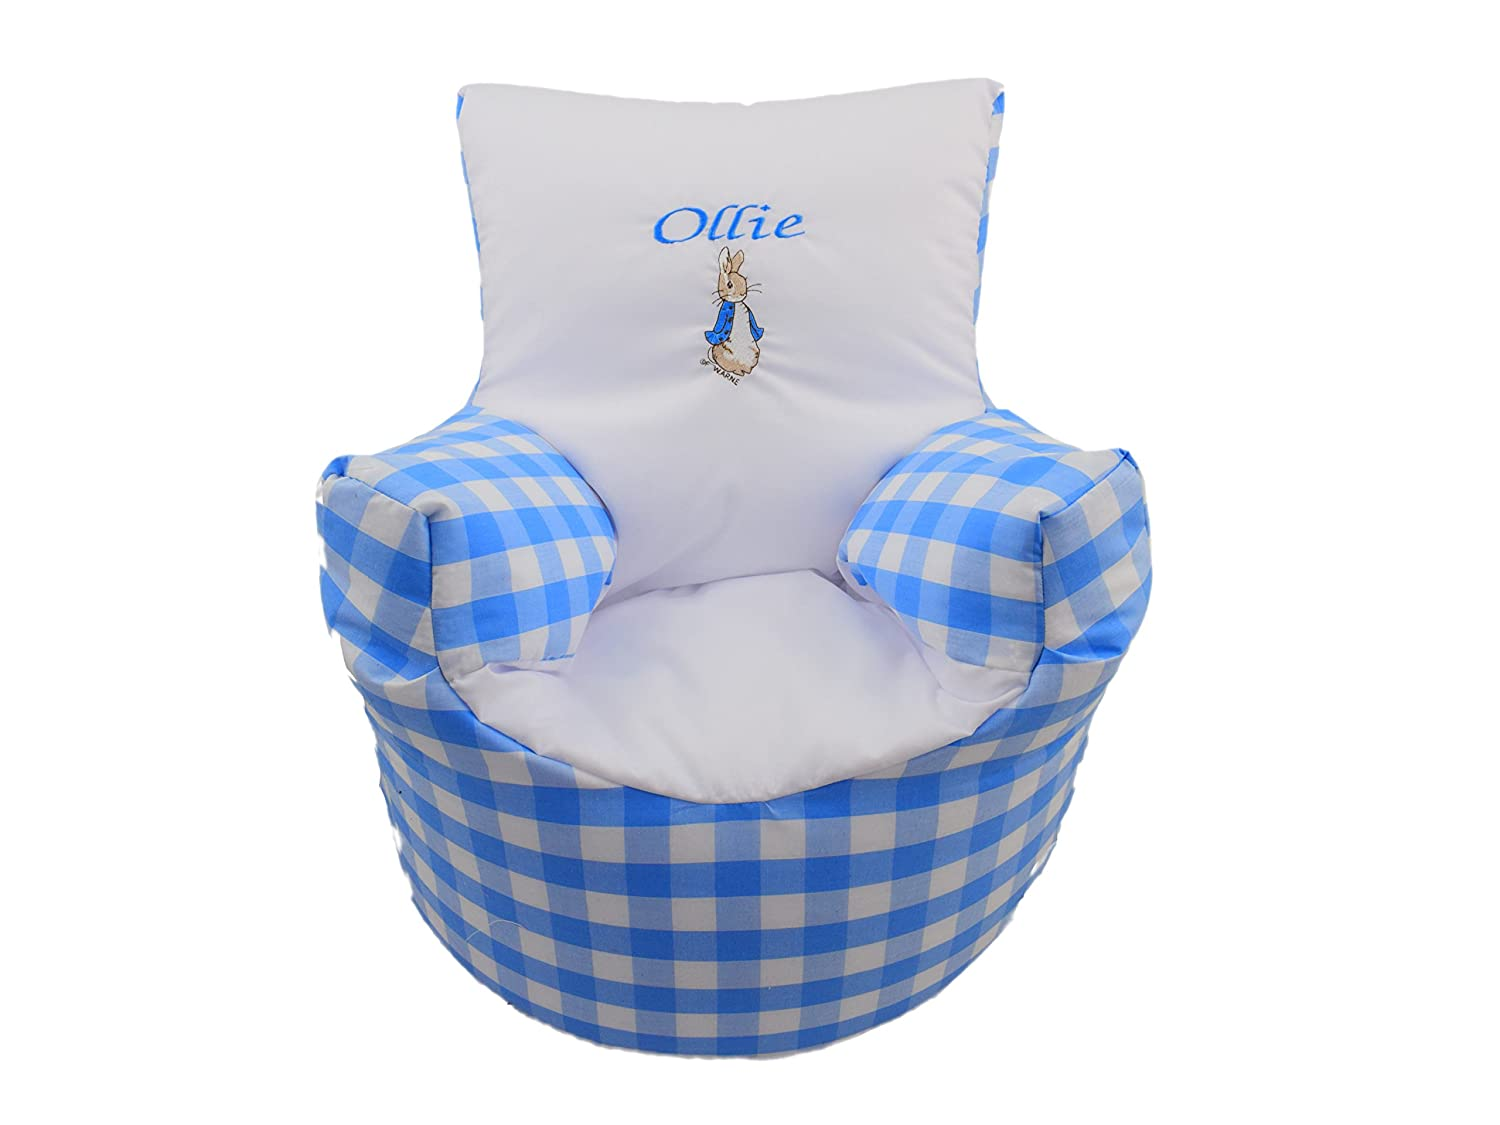 CHILDRENS KIDS TODDLER PRE FILLED PERSONALISED BEAN BAG CHAIR SEAT BOYS PETER RABBIT (NEXT DAY DISPATCH) Small World Baby Shop